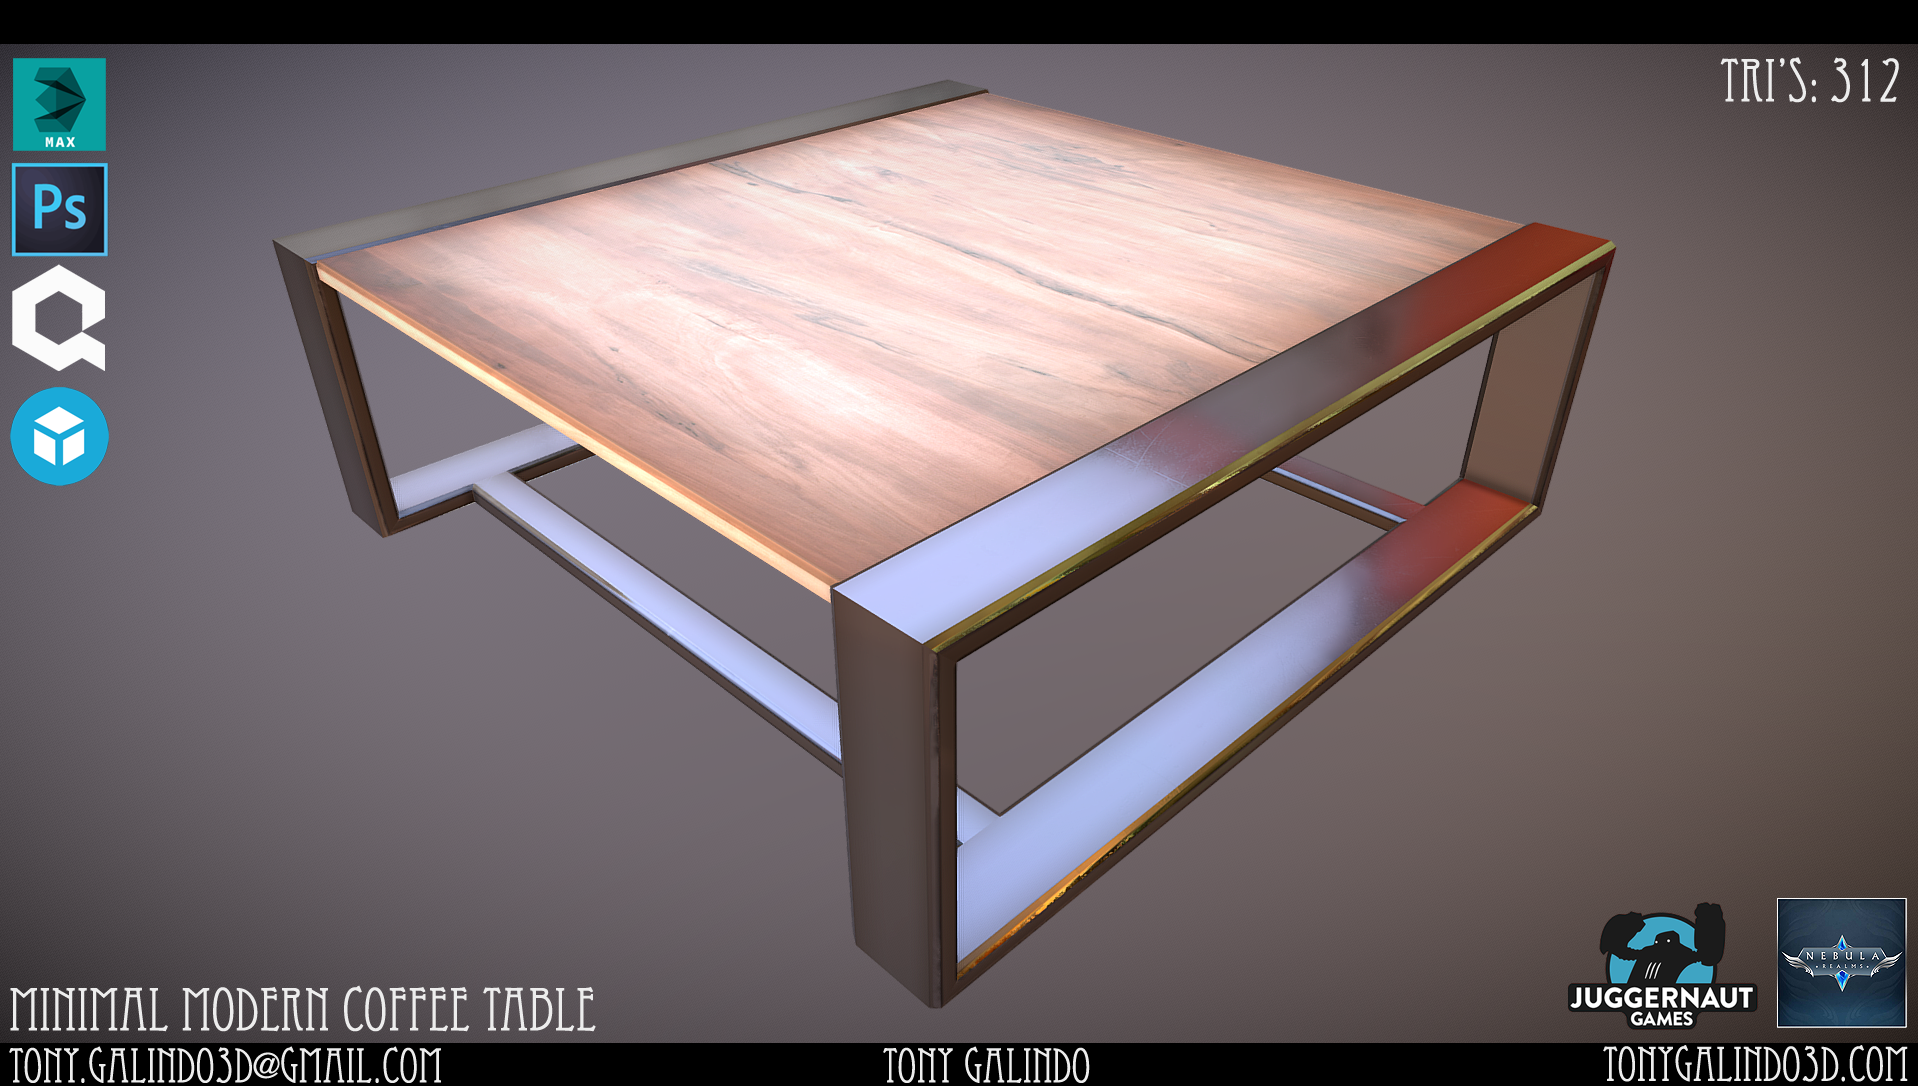 MM_CoffeeTable.png